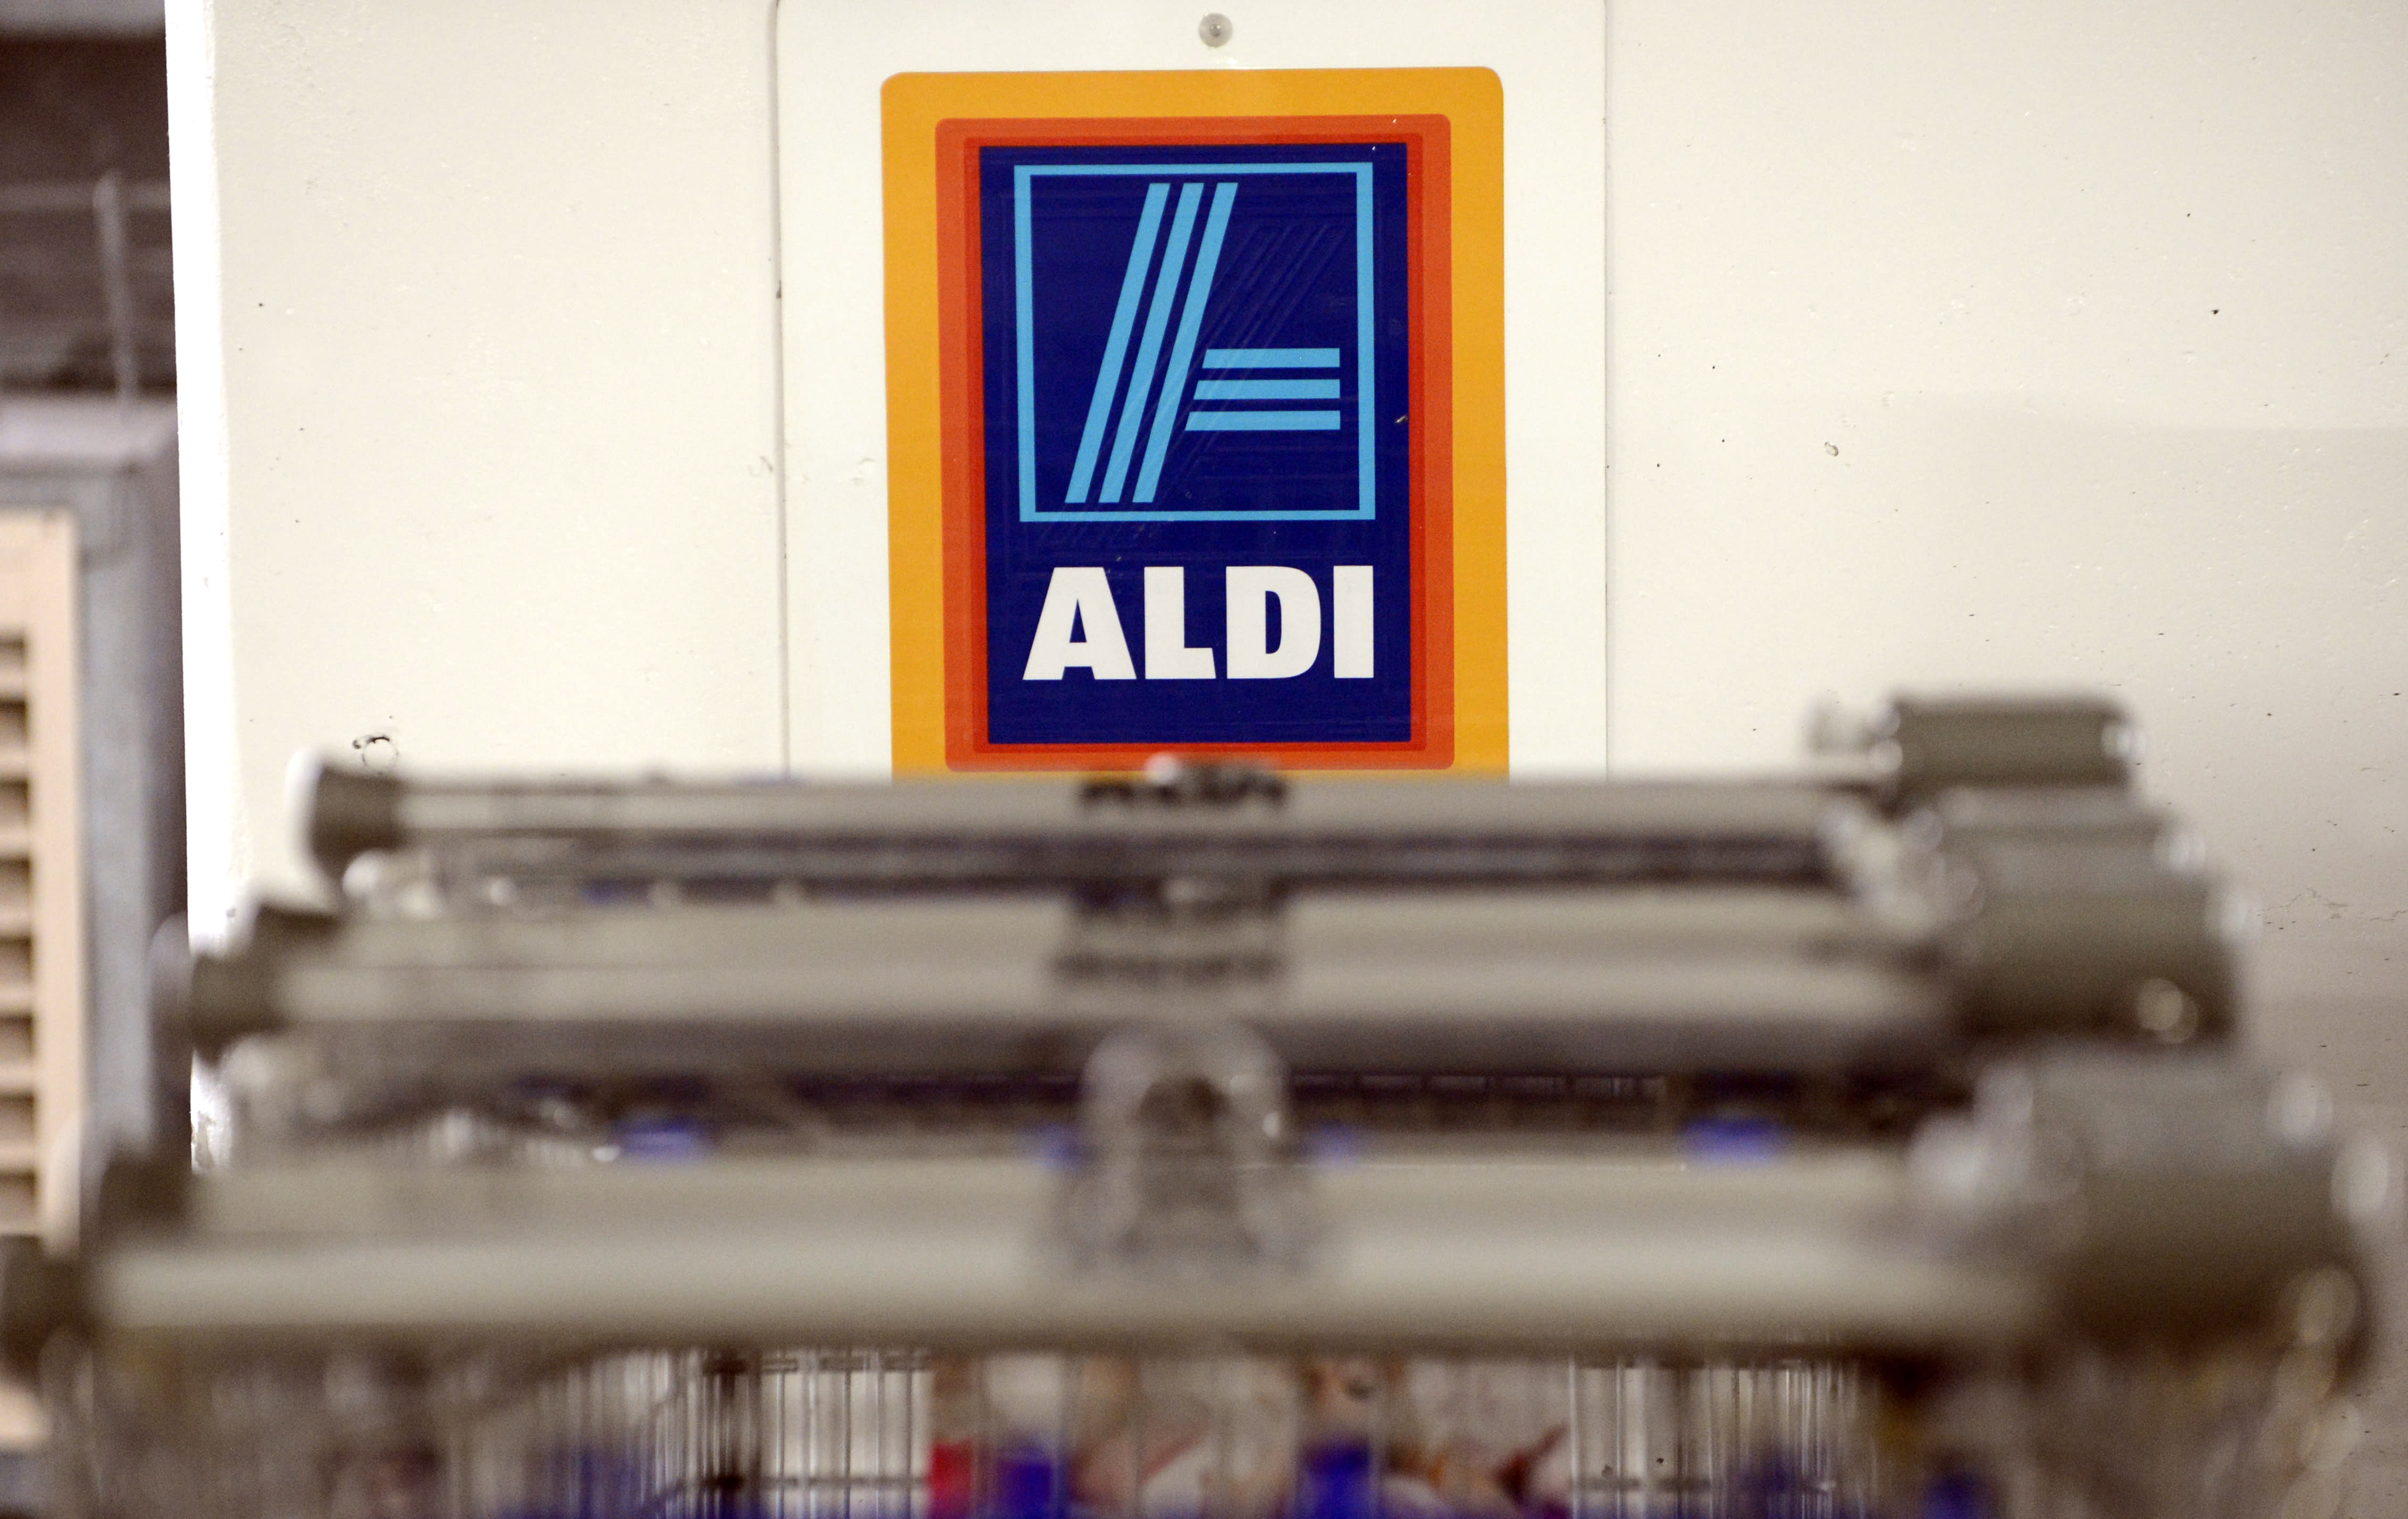 What does the name Aldi stand for?